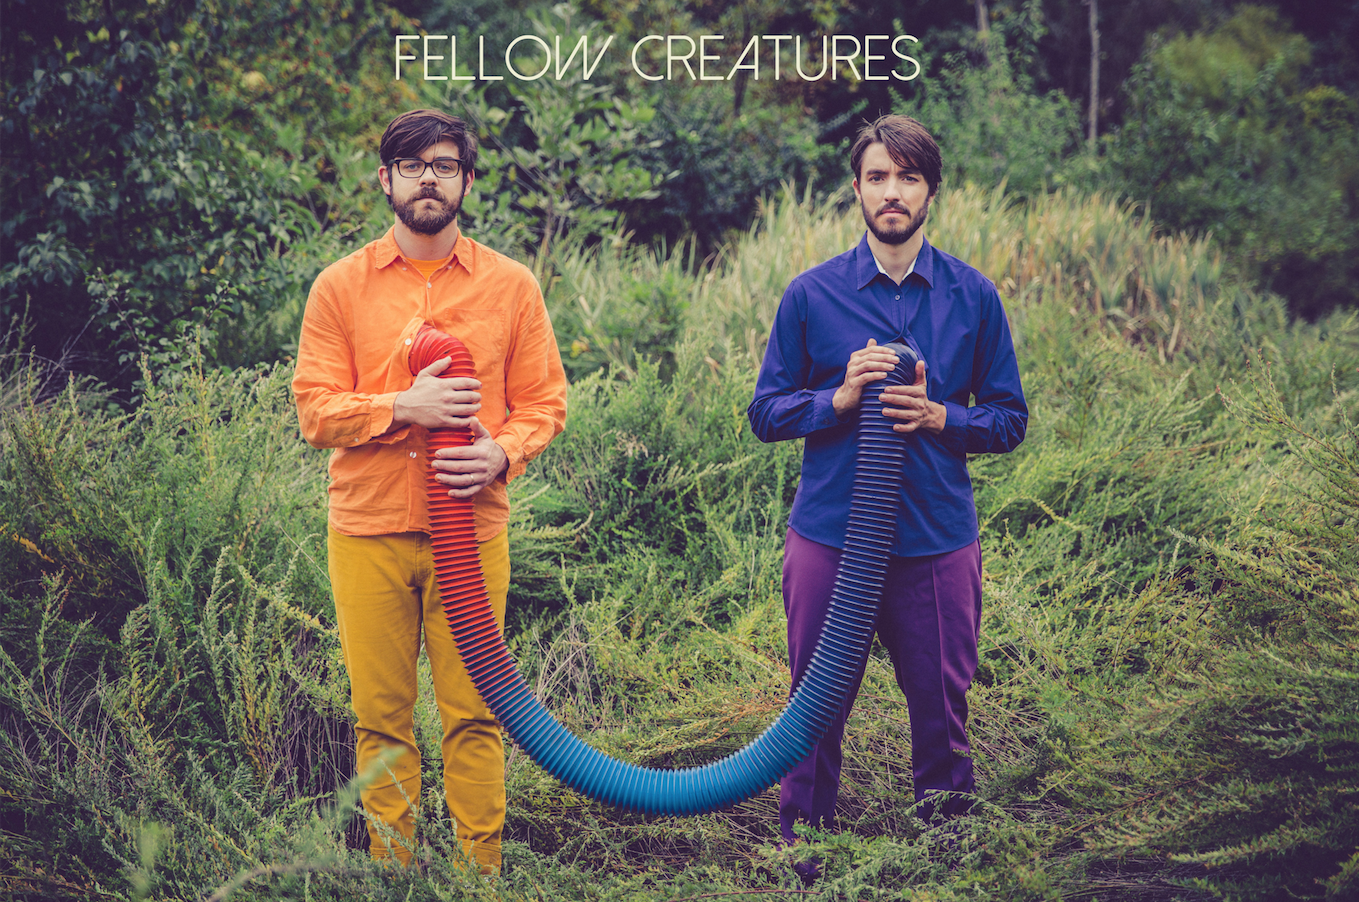 Fellow Creatures  // Promo Photo   Fashion Styling // Art Direction // Hair & Makeup // Props   Photo ©Michael O. Snyder 2014    https://www.michaelosnyder.com/